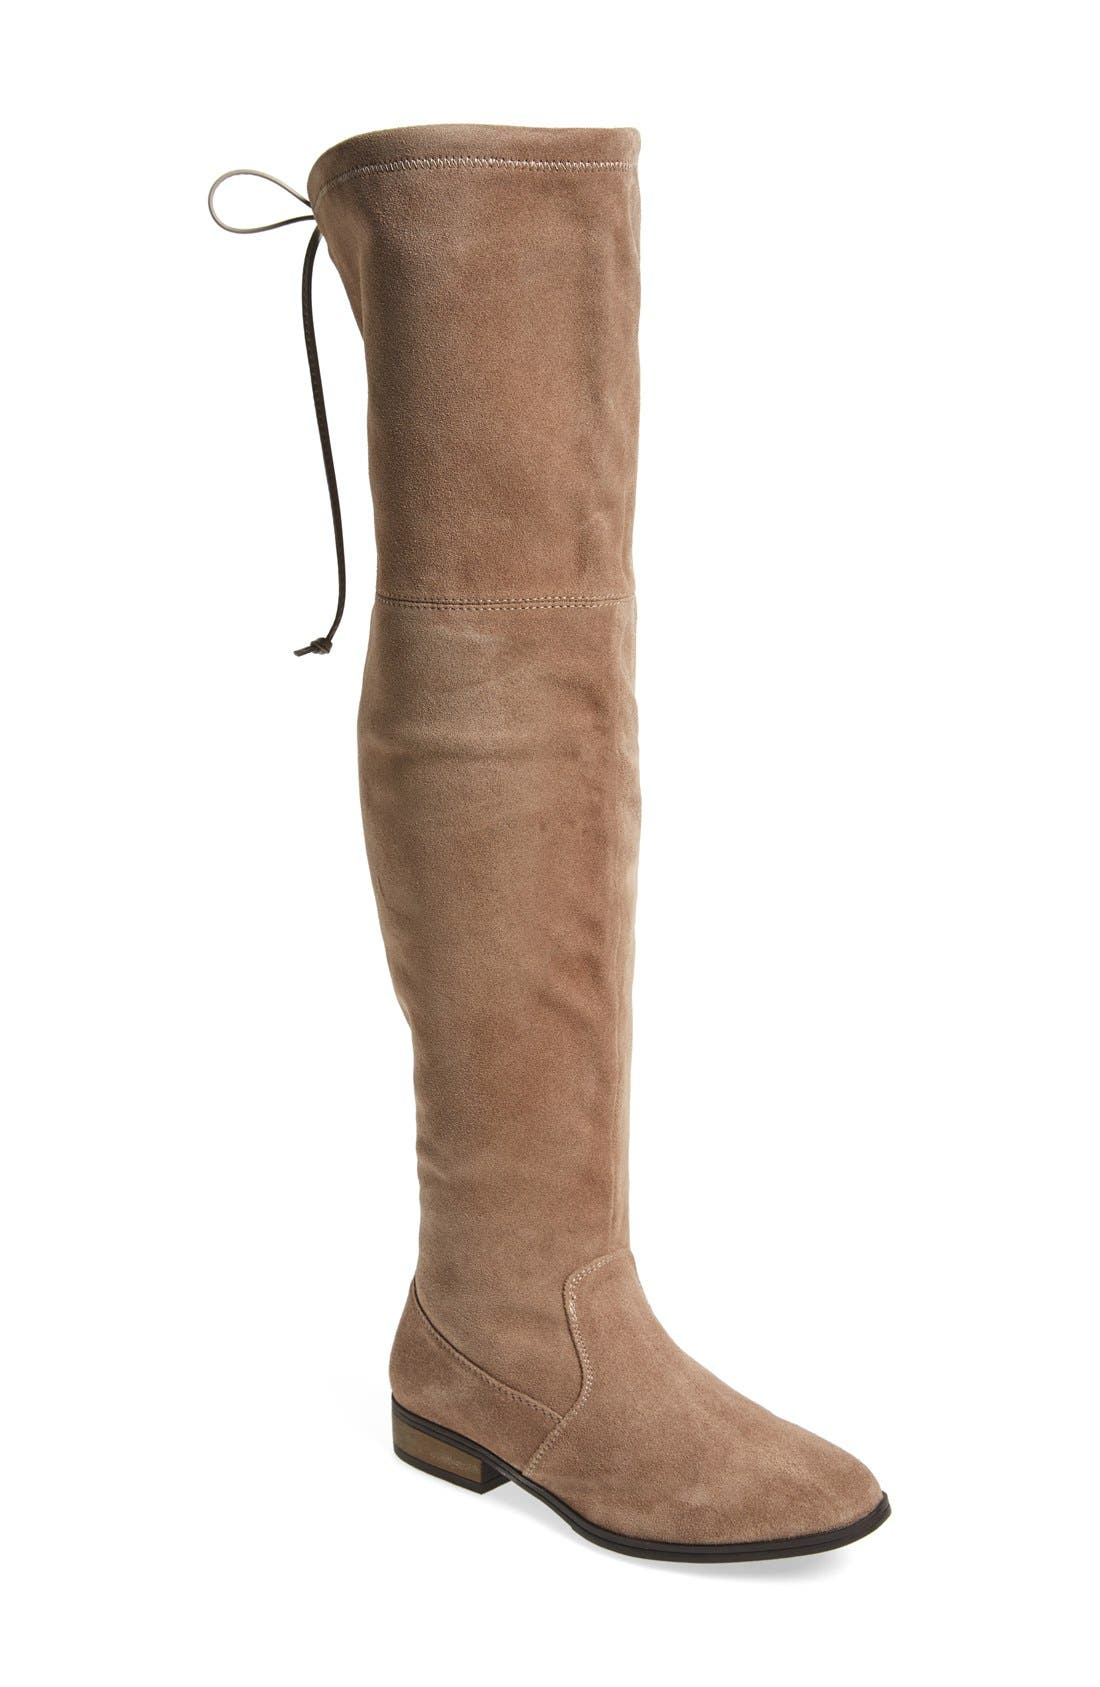 Alternate Image 1 Selected - Sole Society 'Valencia' Over the Knee Boot (Women)